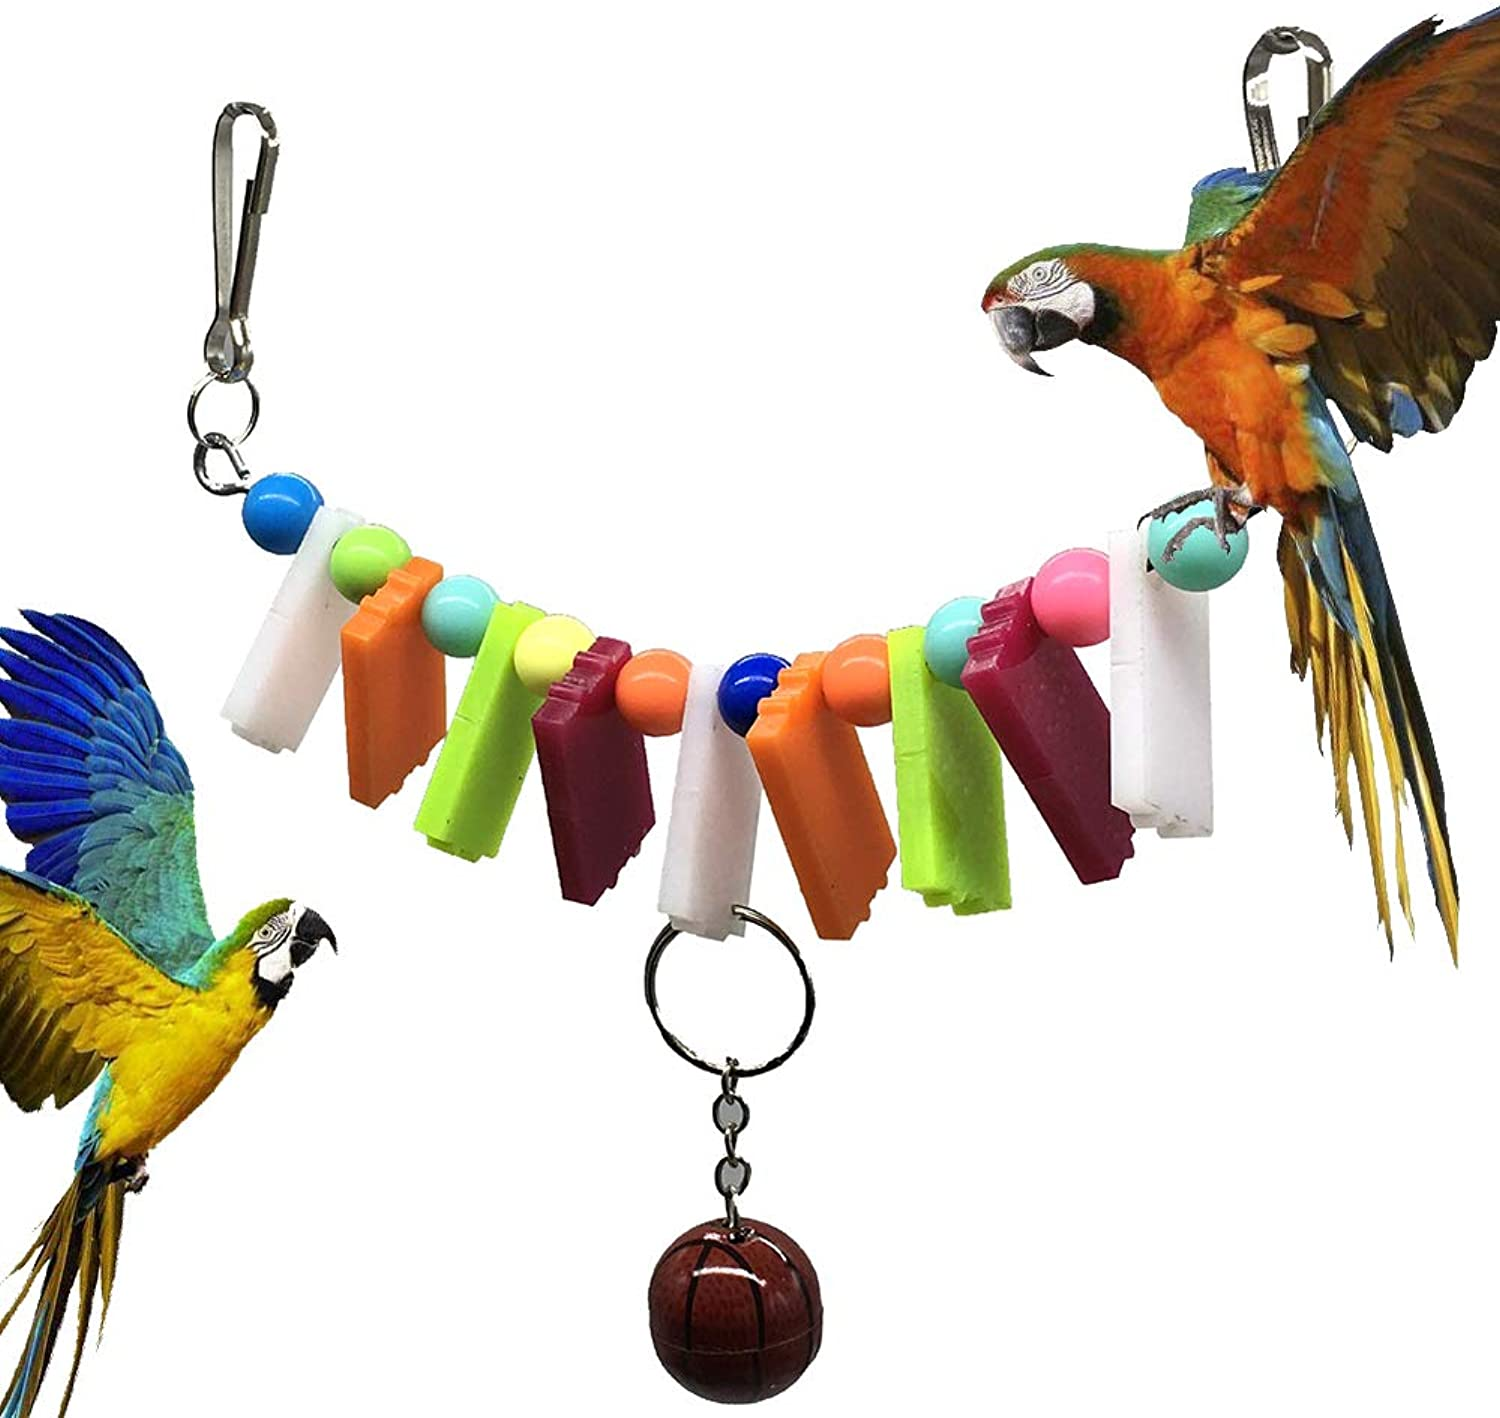 Bird Toy Parred Bite Acrylic color Basketball Toy Pet Supplies Birdcage Decoration Hanging String Accessories